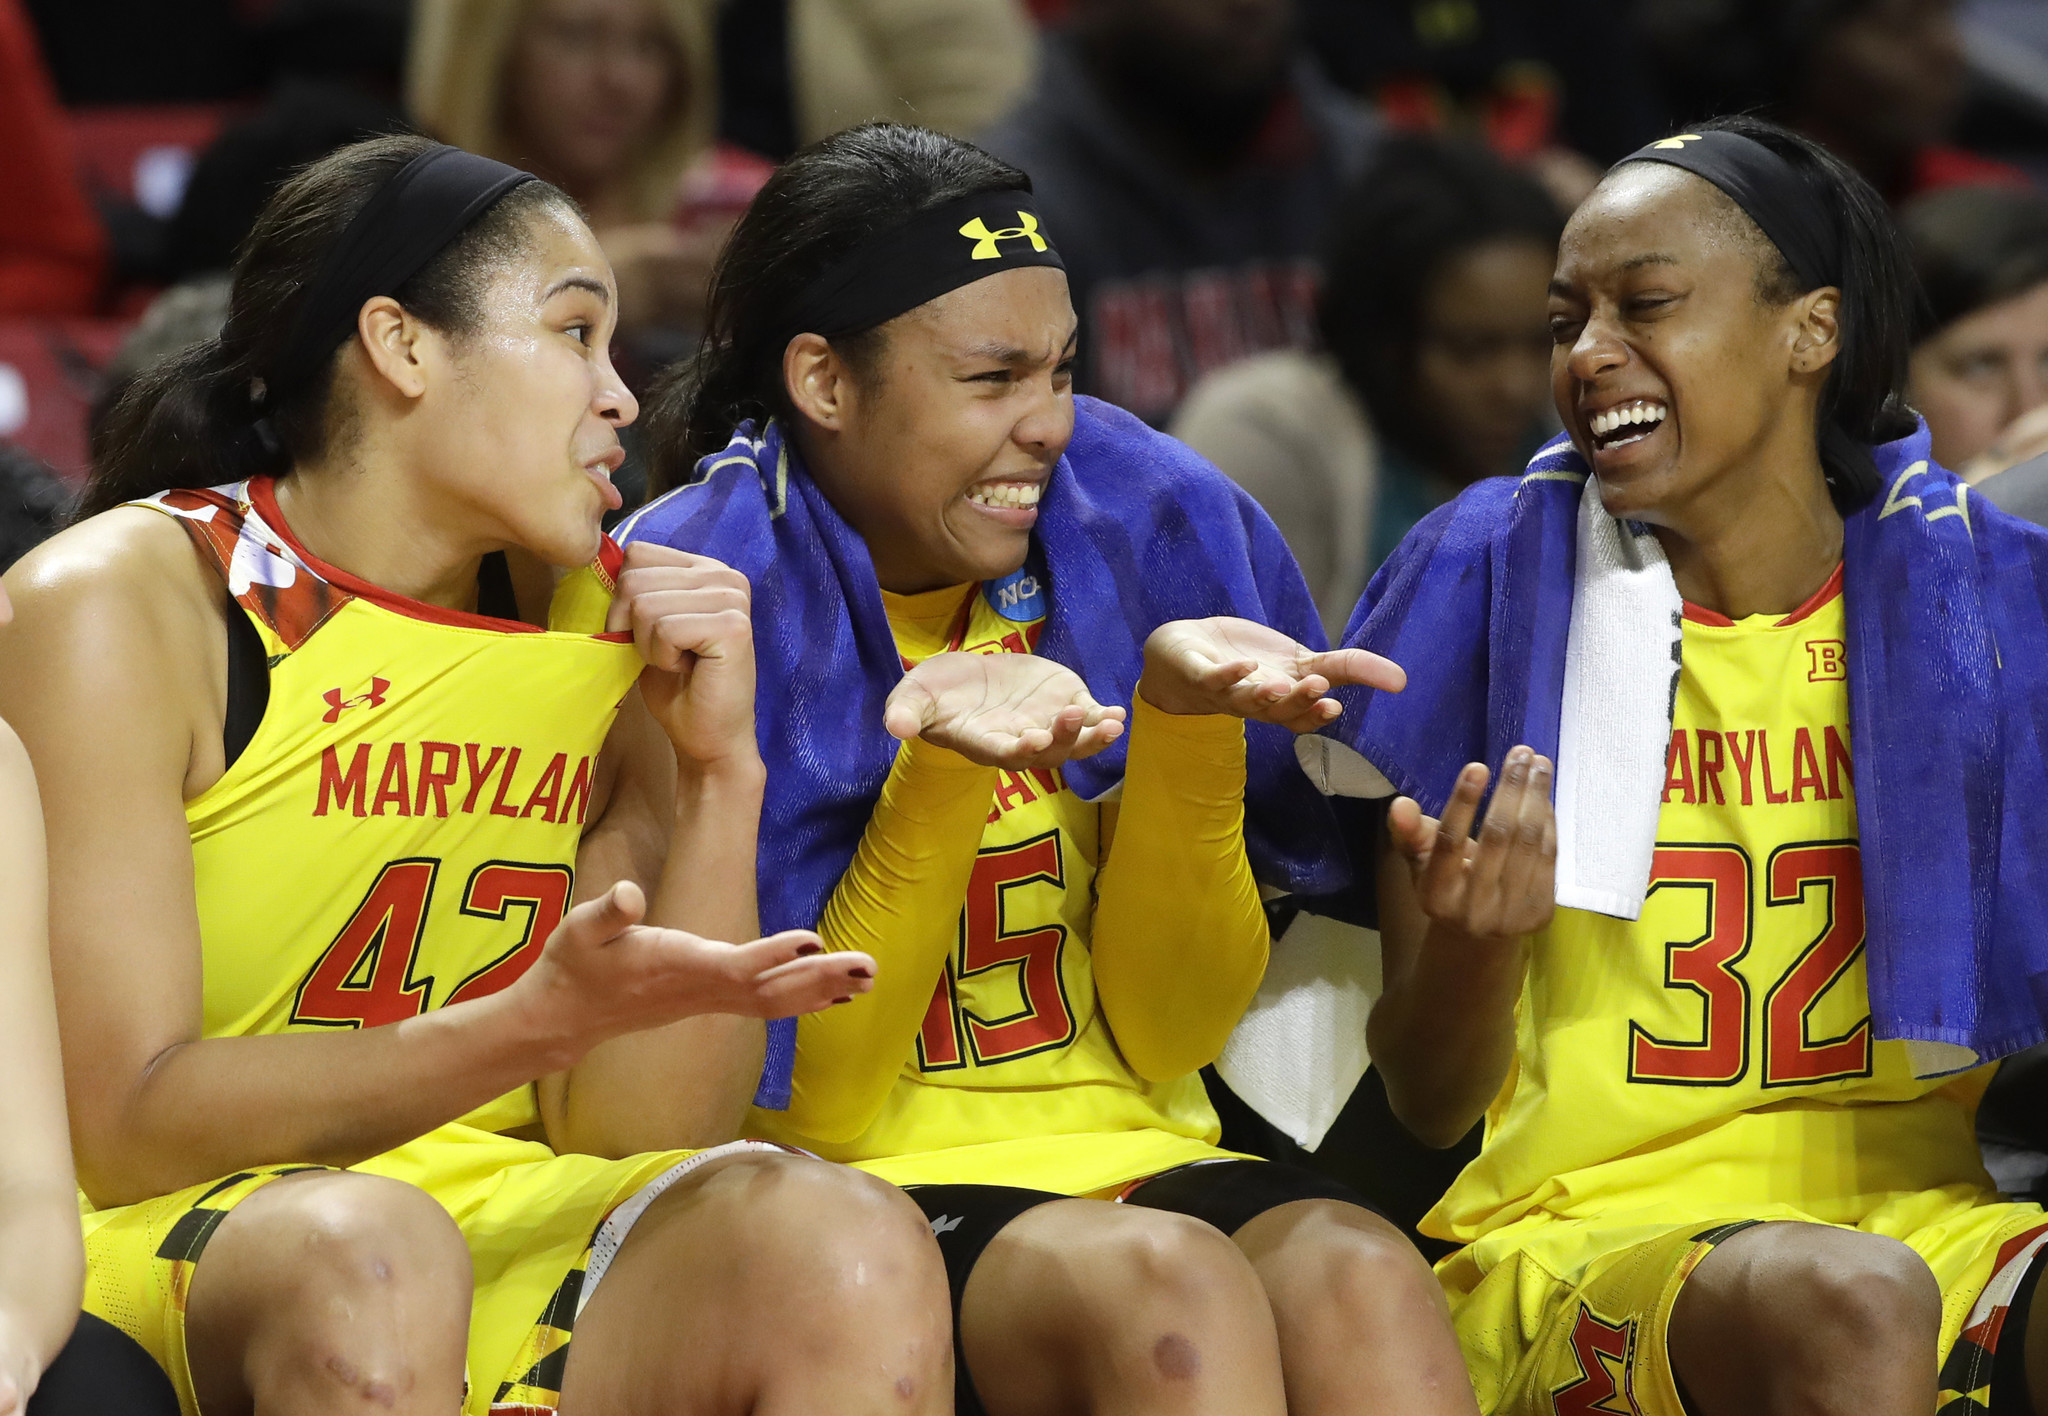 Bal-for-terps-women-fans-scarcity-of-tickets-to-bridgeport-regional-is-ridiculous-20170321